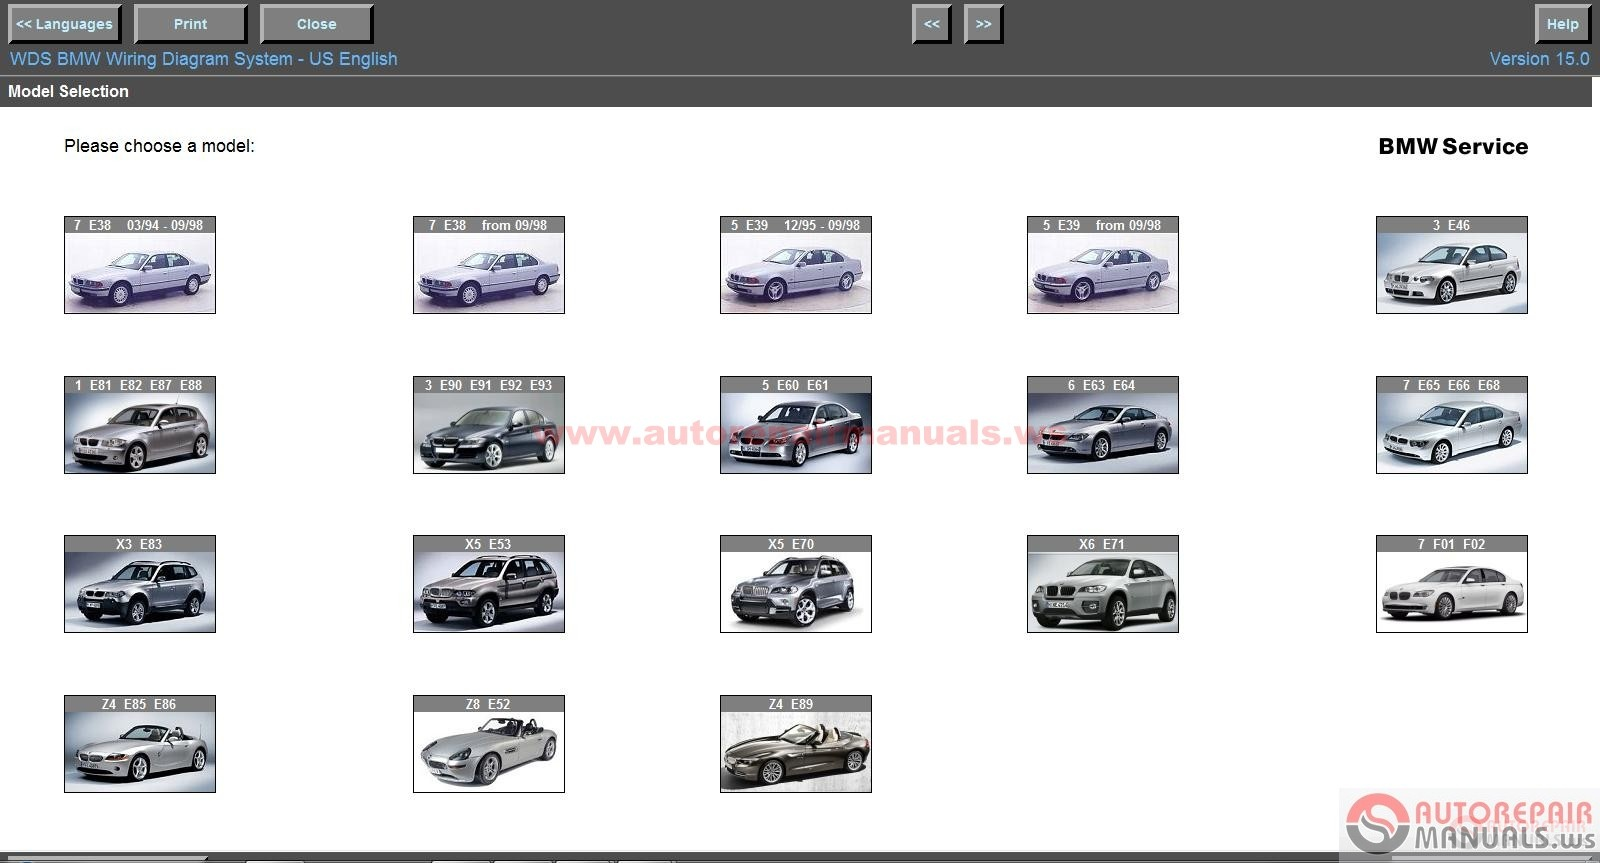 bmw wds v15 wiring diagram diagram base website wiring diagram ...  tassanare